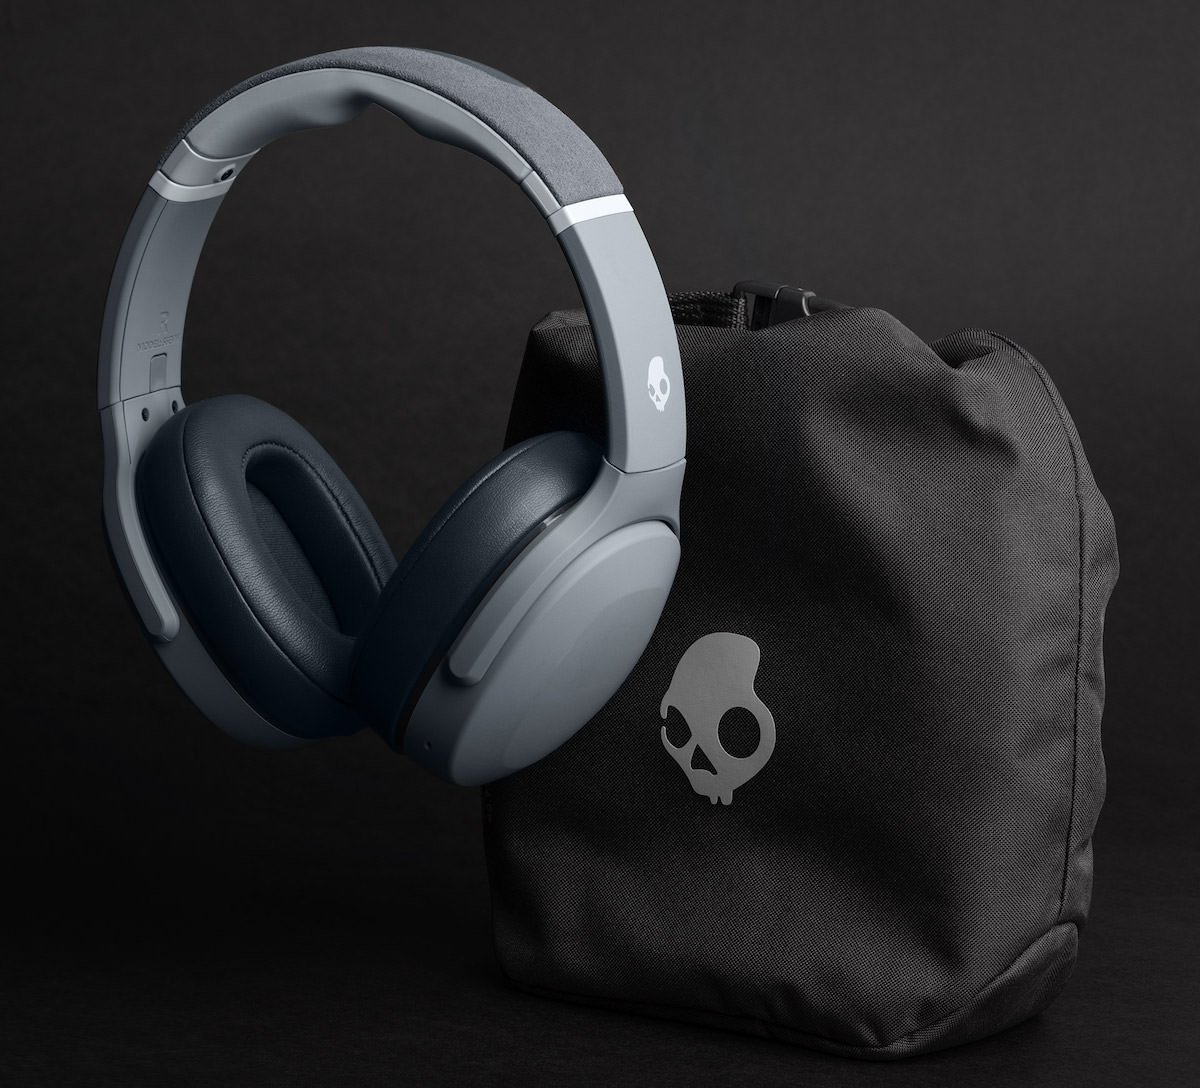 Skullcandy Crusher Evo Wireless Headphones in Chill Grey with Carrying Case